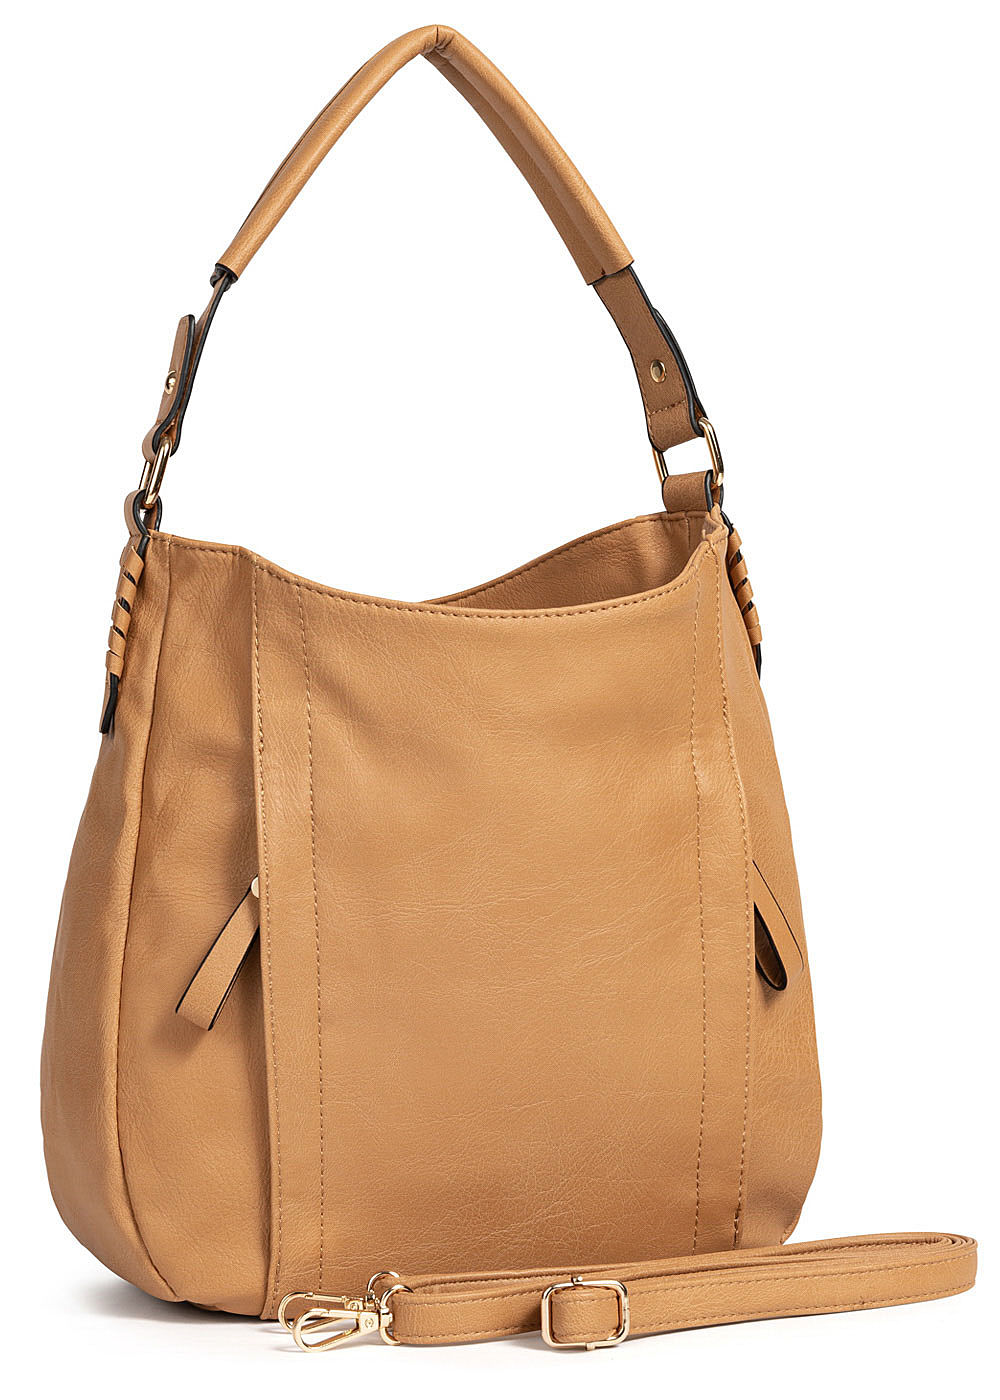 Styleboom Fashion Damen Tote Zip Bag camel braun - Art.-Nr.: 19062561-OS-BR